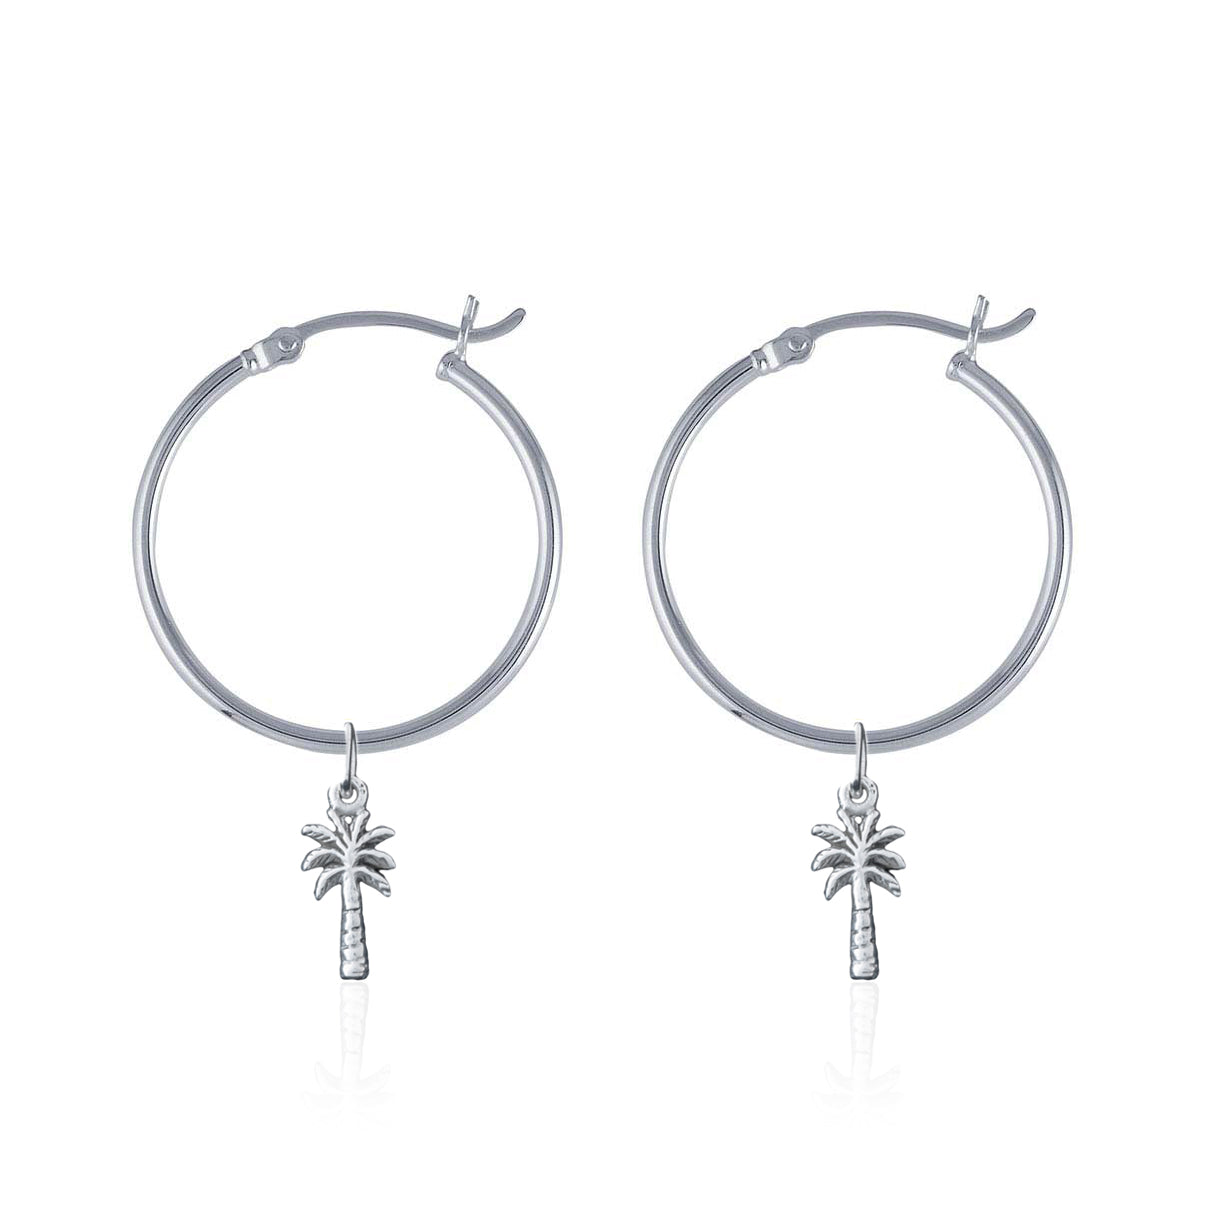 Hoop Earrings - Palm Springs (Silver)